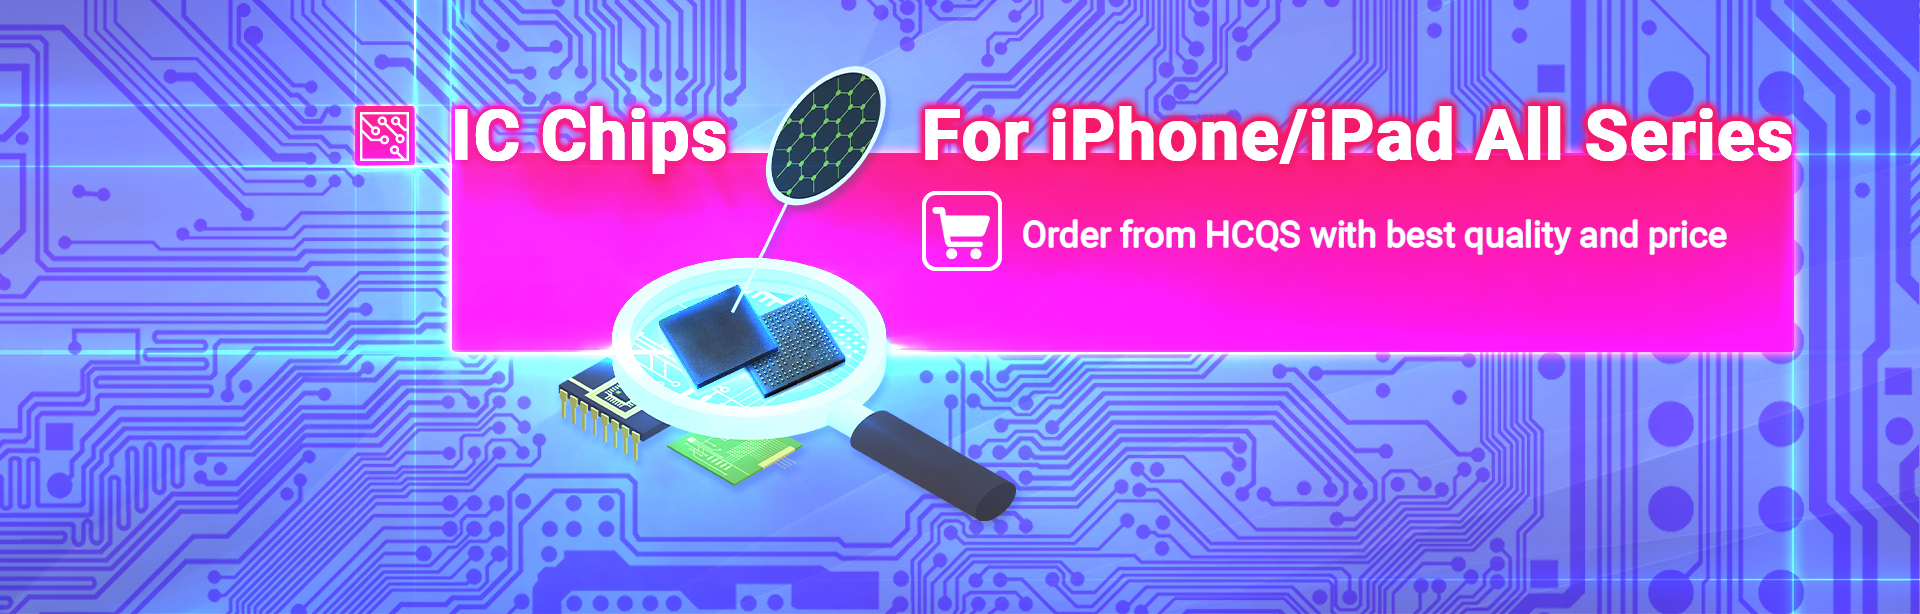 IC Chip For iPhone/iPad All Series